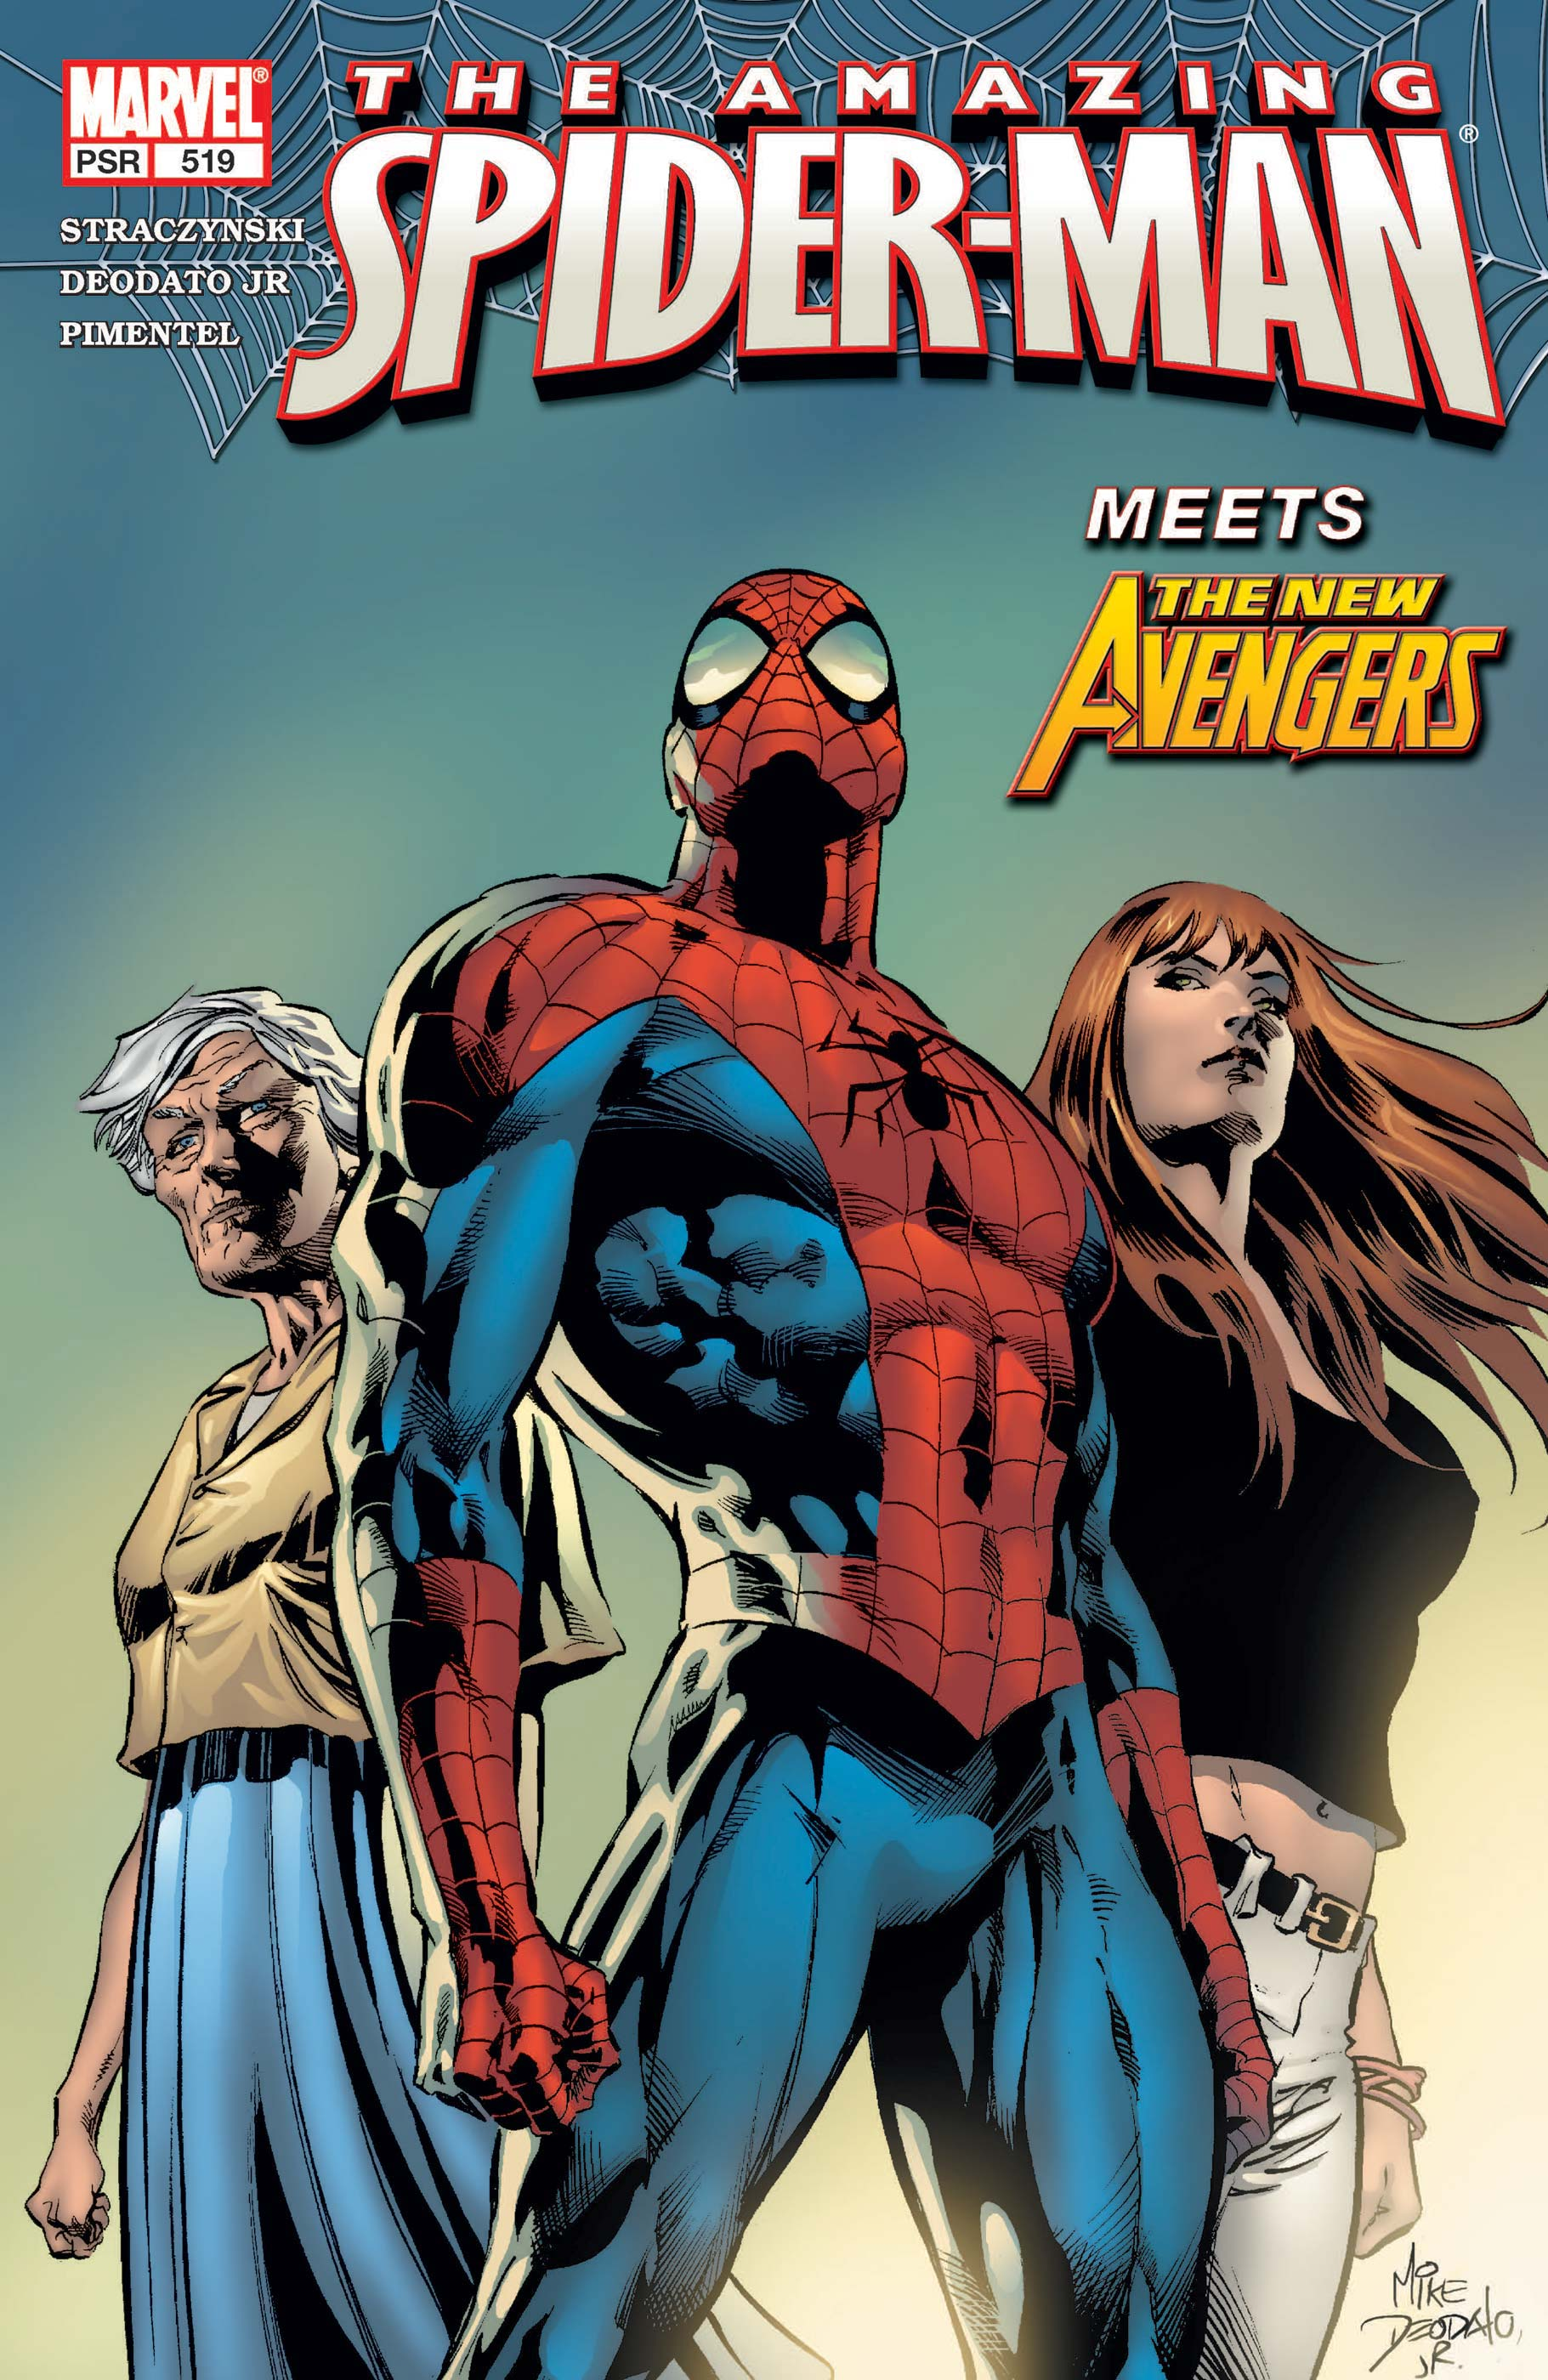 Amazing Spider-Man (1999) #519